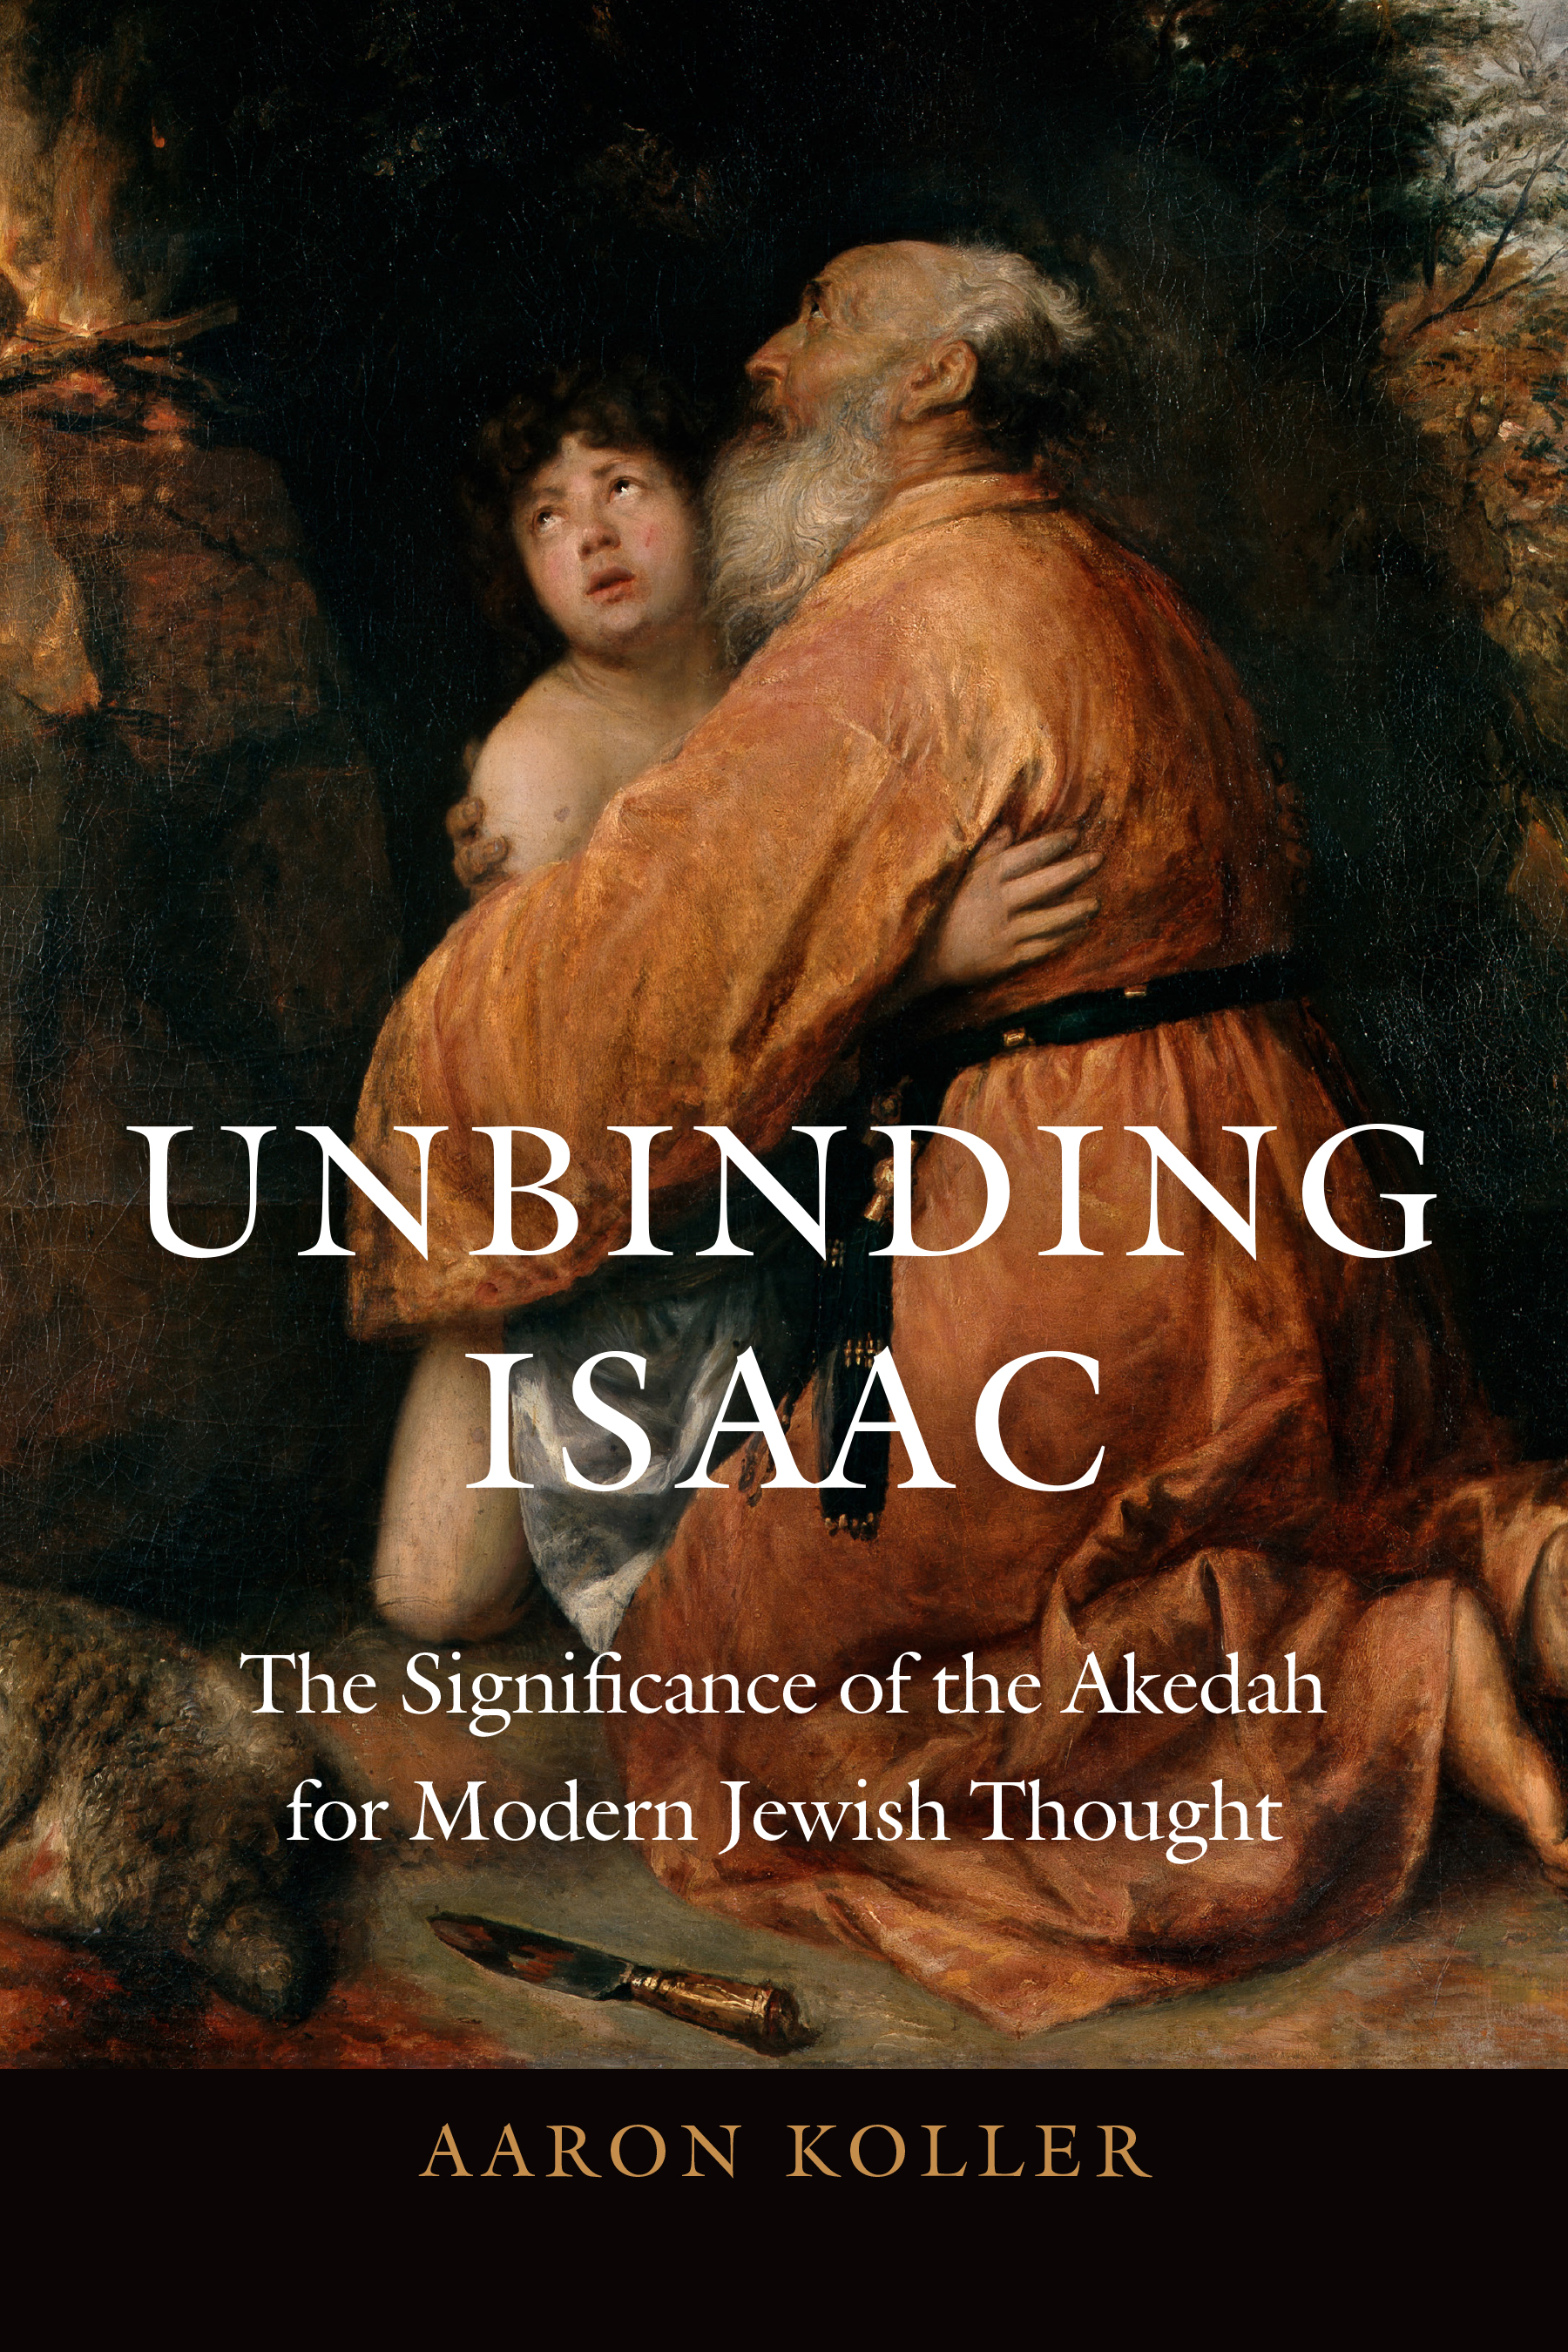 Unbinding Isaac: The Significance of the Akedah for Modern Jewish Thought